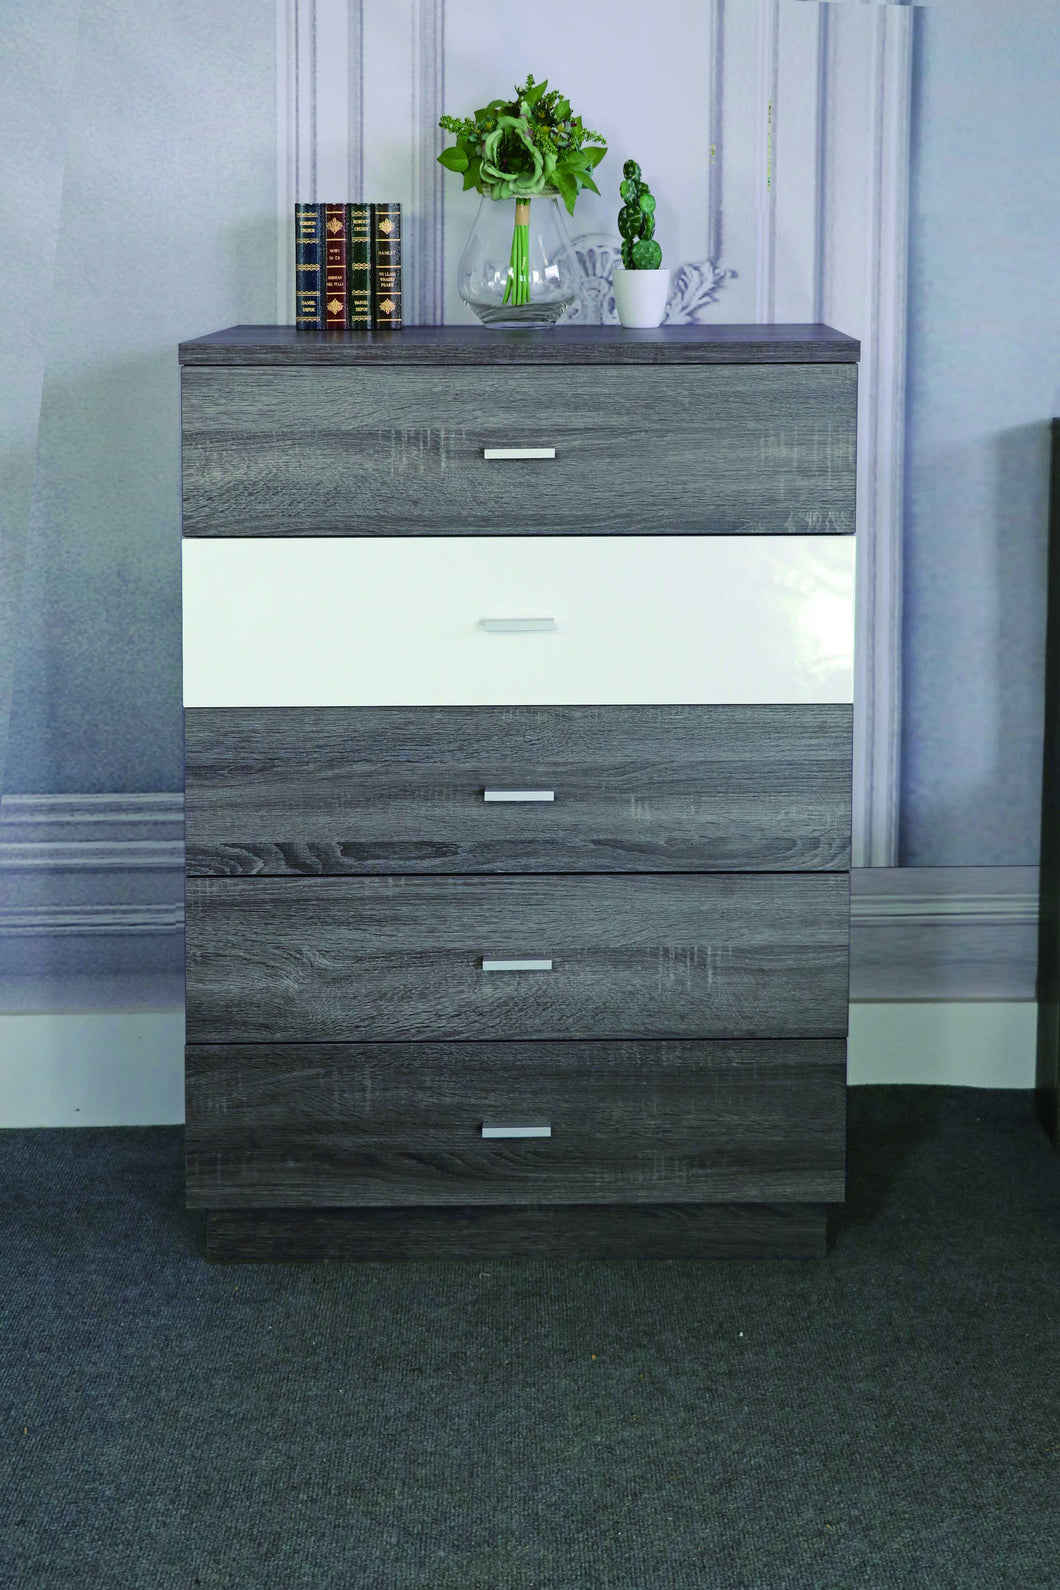 Spacious Chest With 5 Storage Drawers On Metal Glides, Distressed Gray & Glossy White